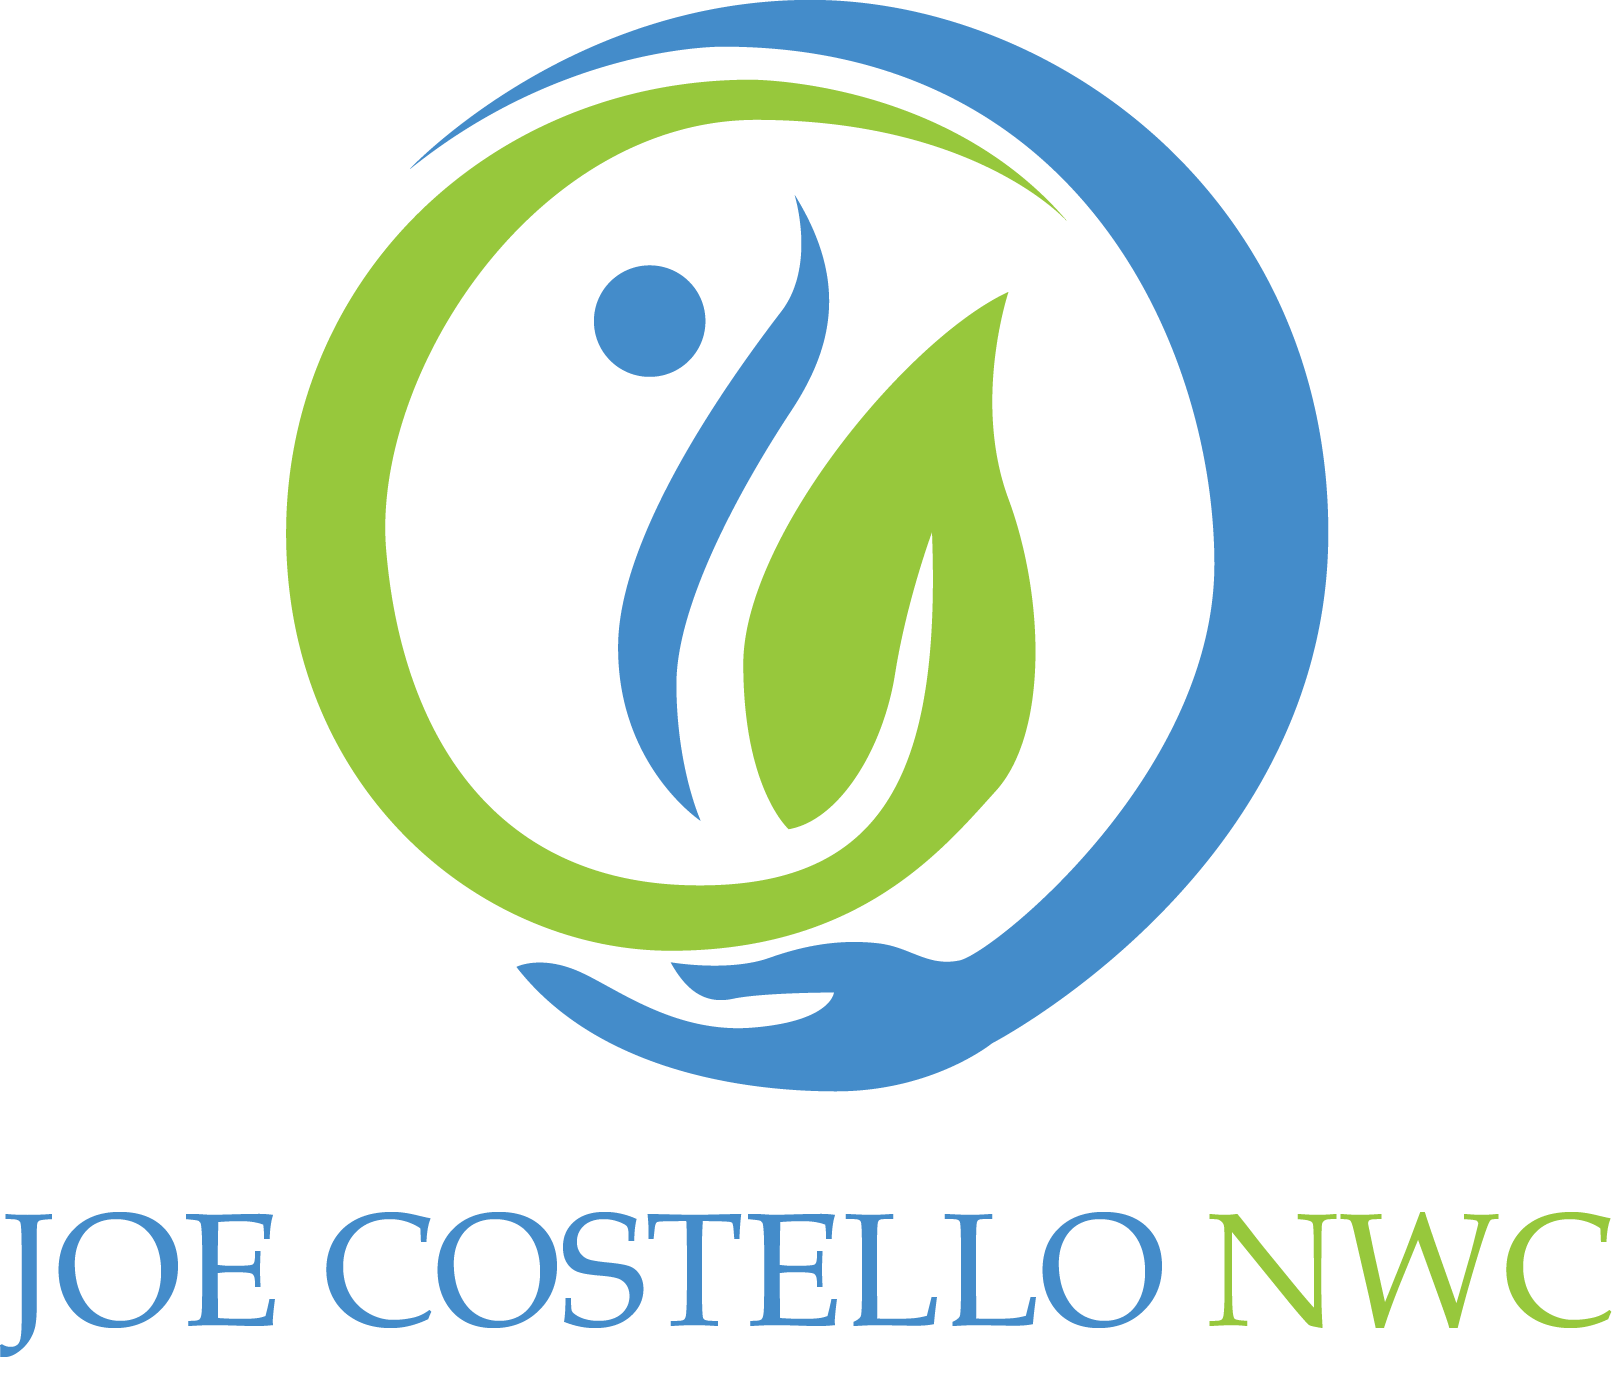 Joe Costello NWC